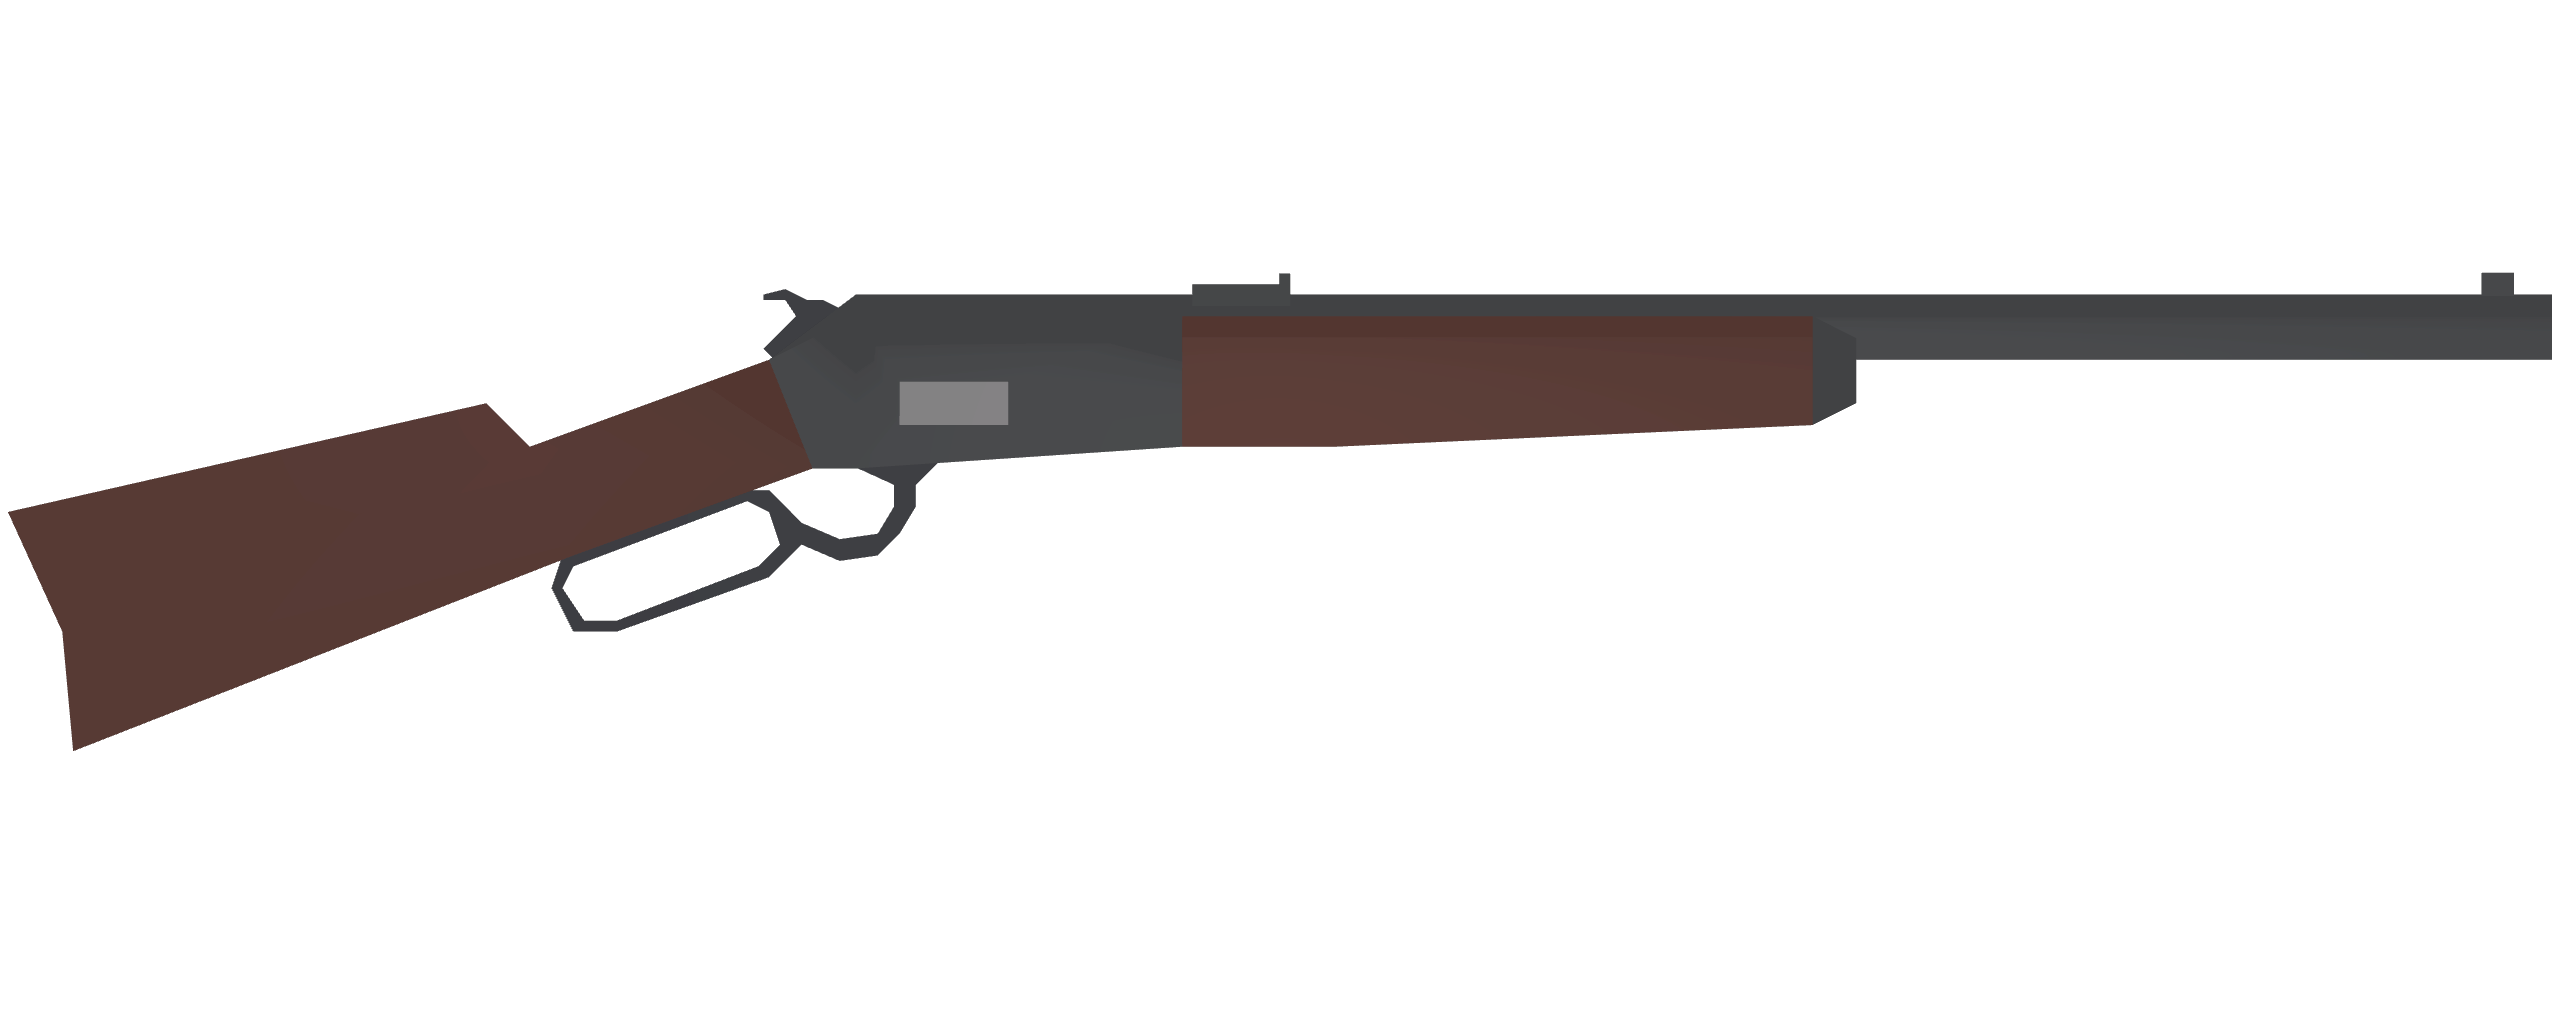 Unturned - All Weapons ID's for Uncreated Warfare Mods - Neutral Weapons - DF1177E